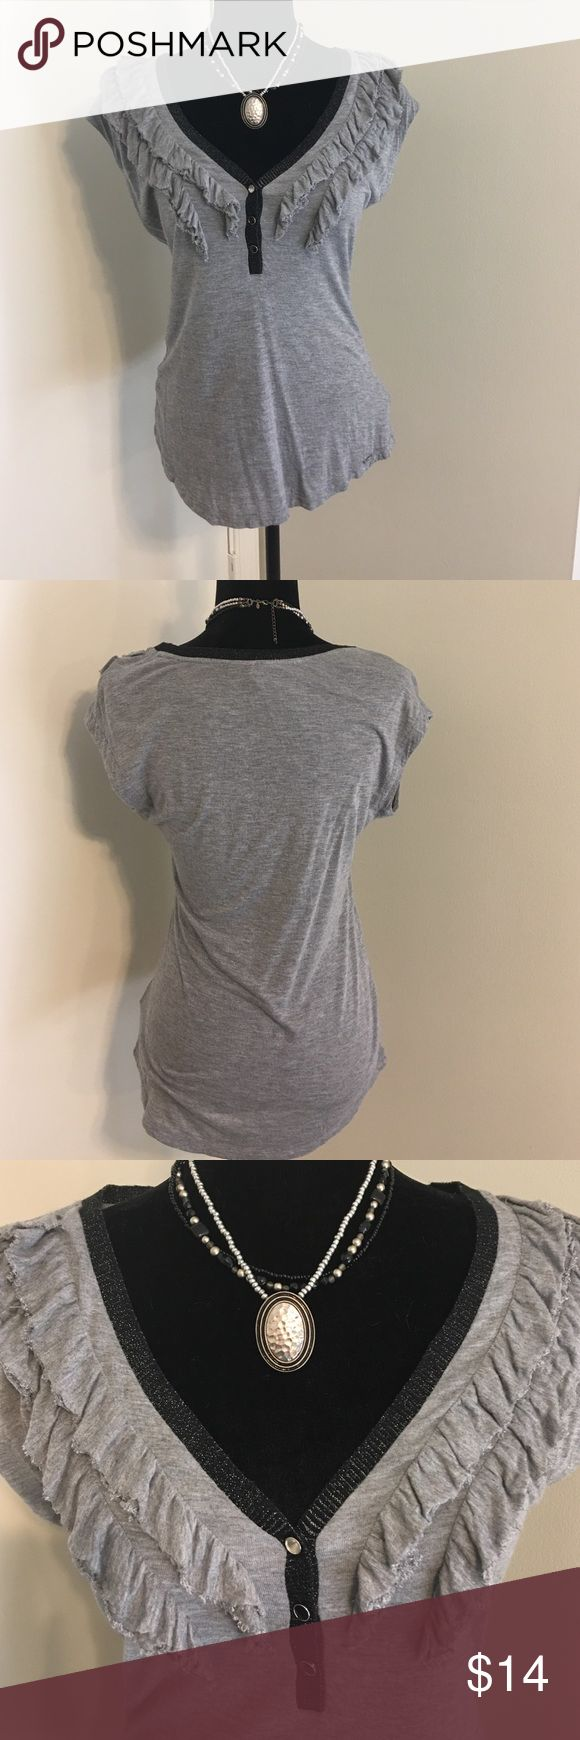 🆕Guess Vneck ruffle detail Tshirt Guess Vneck ruffle detail Tshirt- is missing black gem snap (top snap cover) see third pic- this is not as noticeable as you think snap is silver- price is reflective. Great with jeans and shorts! Guess Tops Tees - Short Sleeve